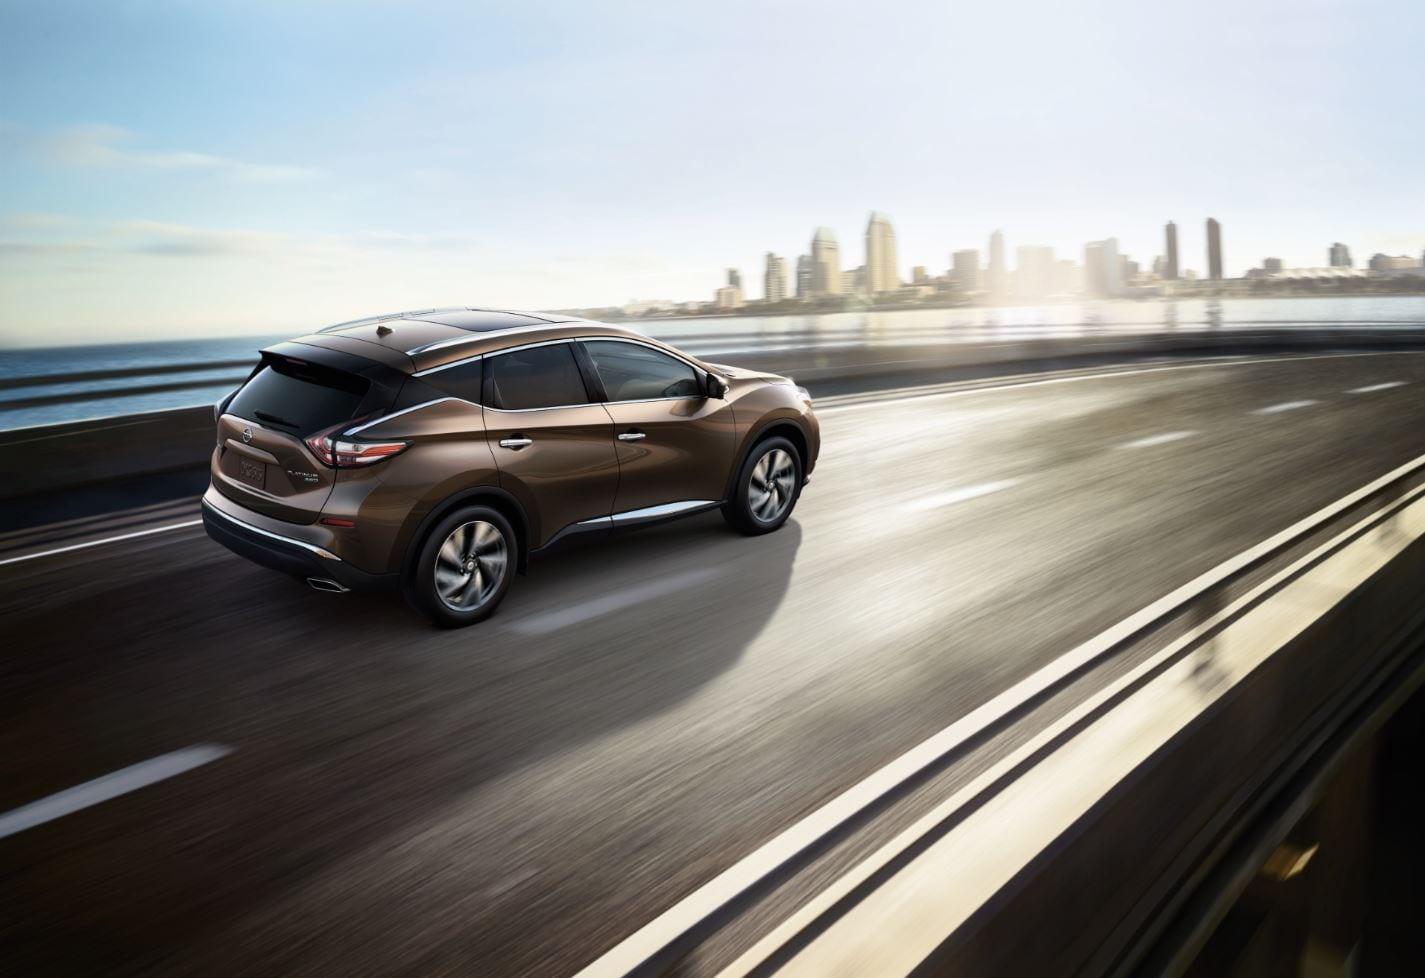 Lease a new nissan suv at your local ballwin mo nissan dealership